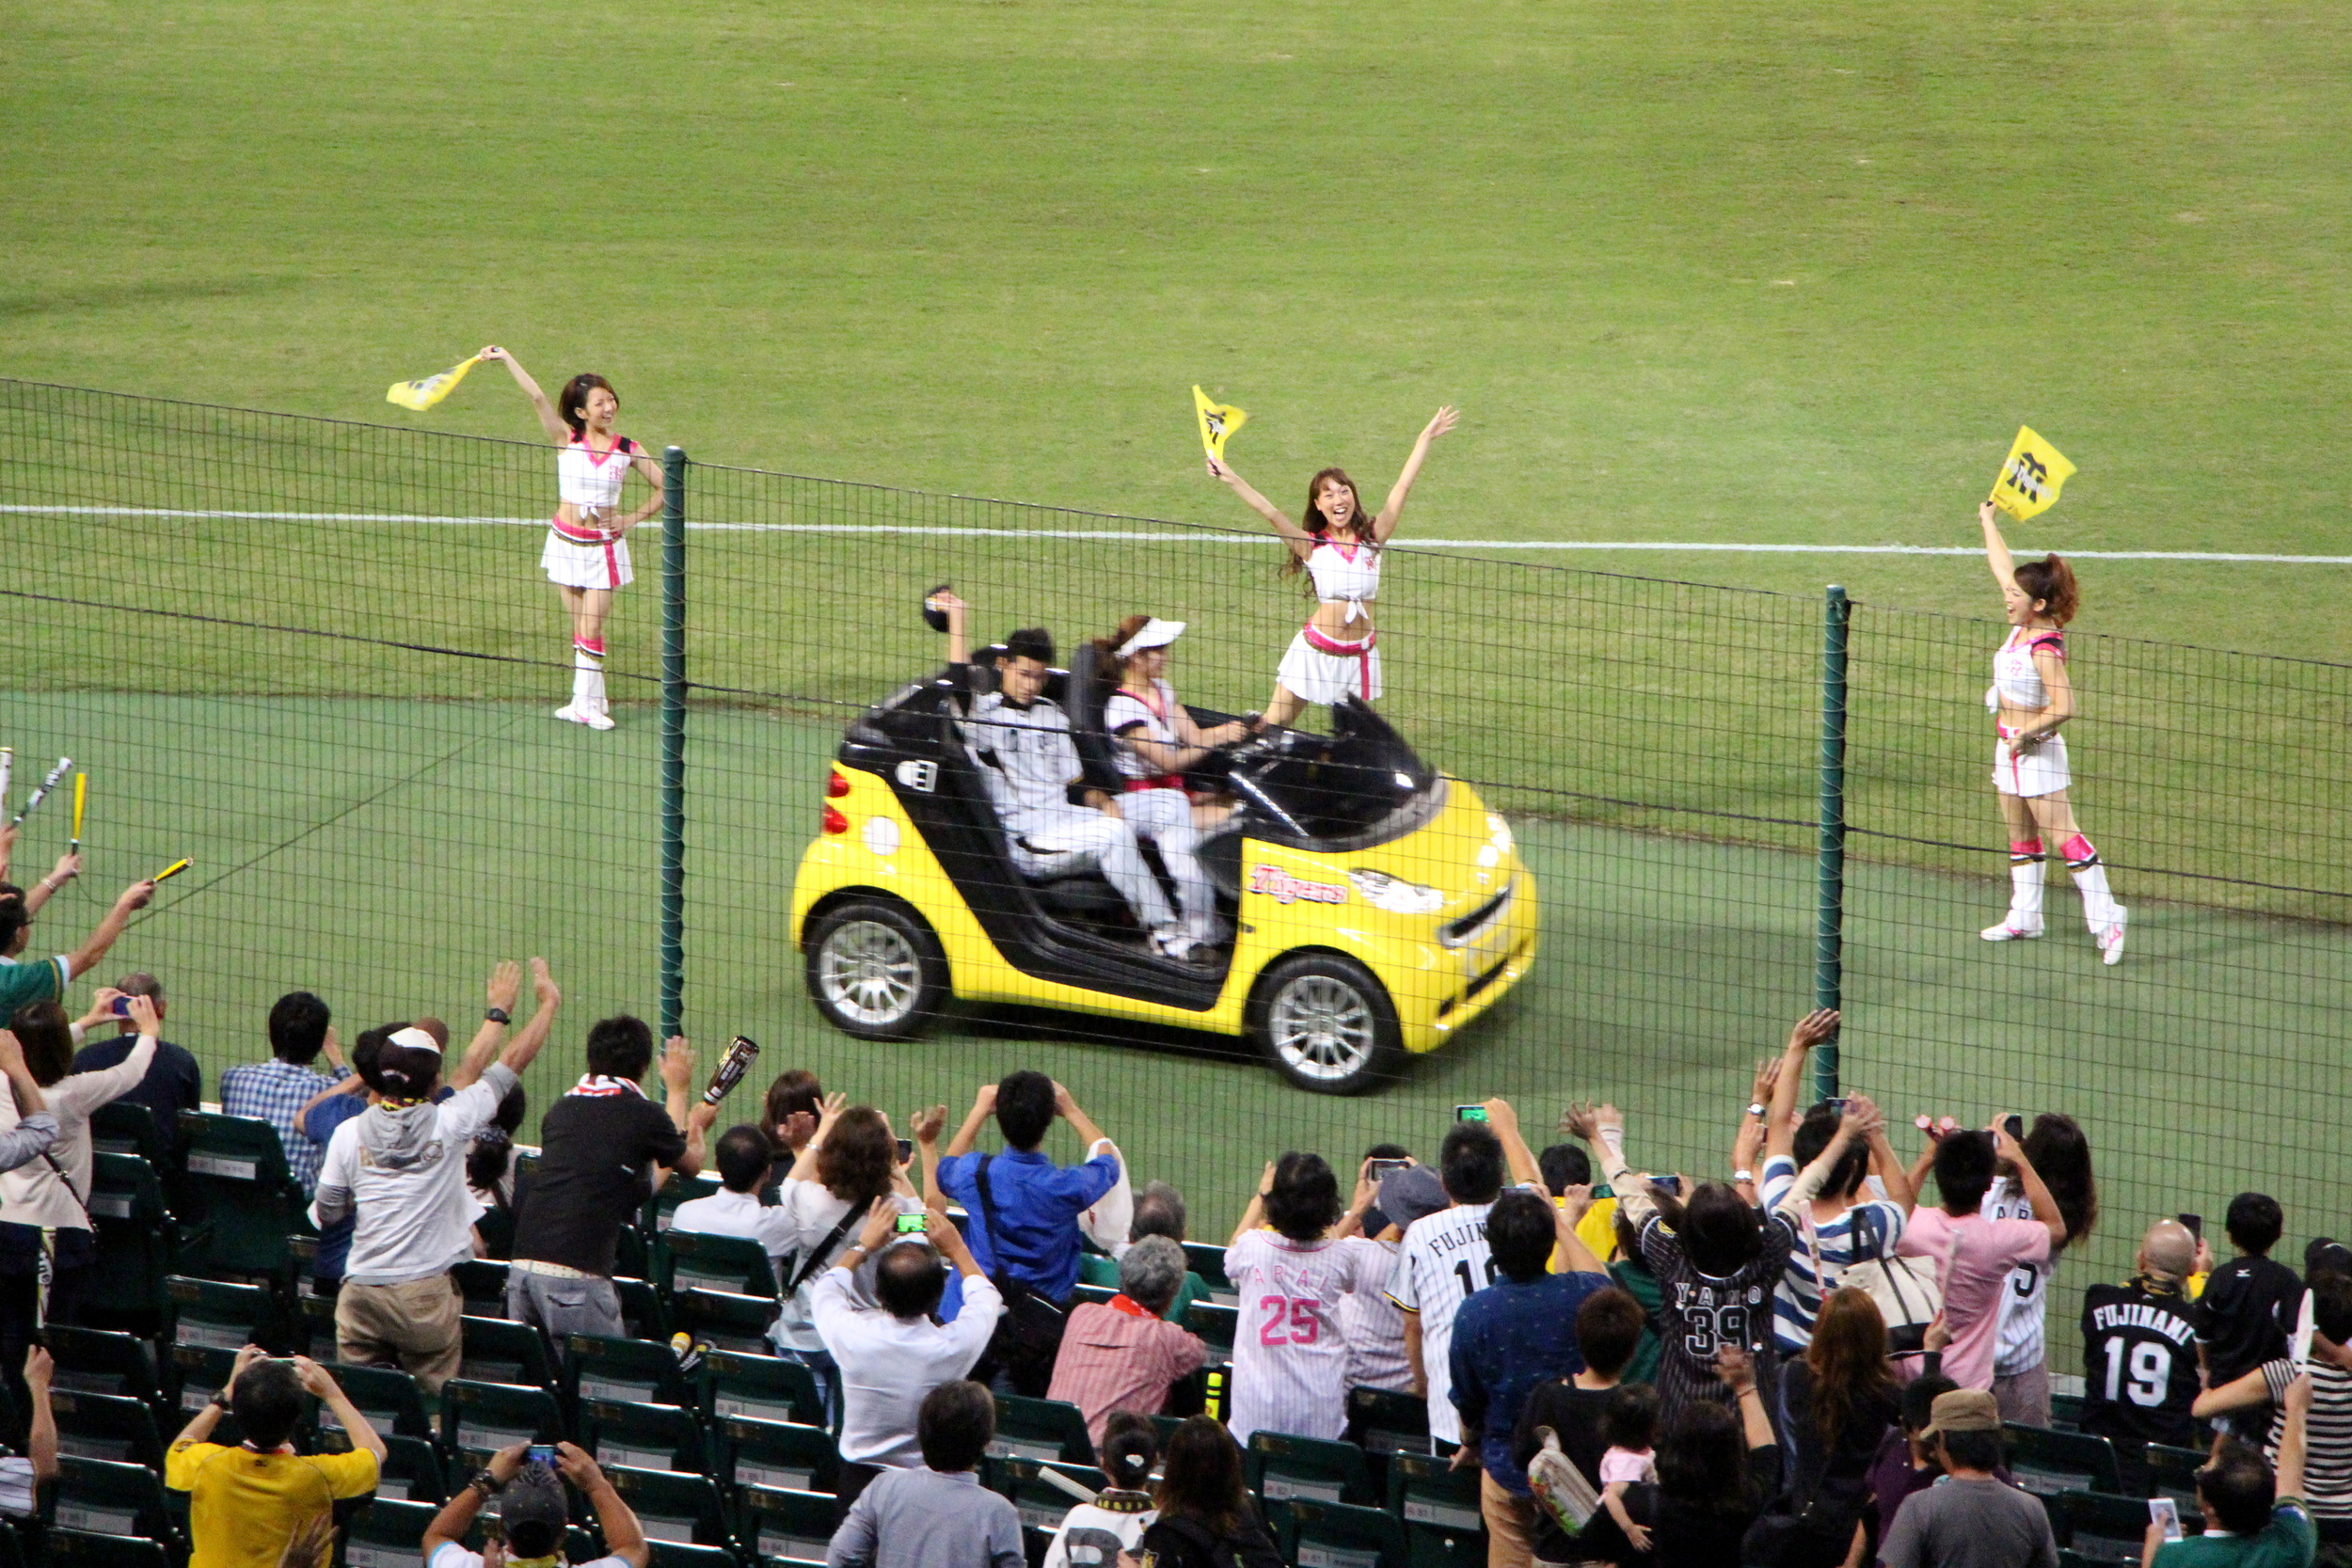 ...then a victory lap around the field. Note that baseball in Japan also has cheerleaders.